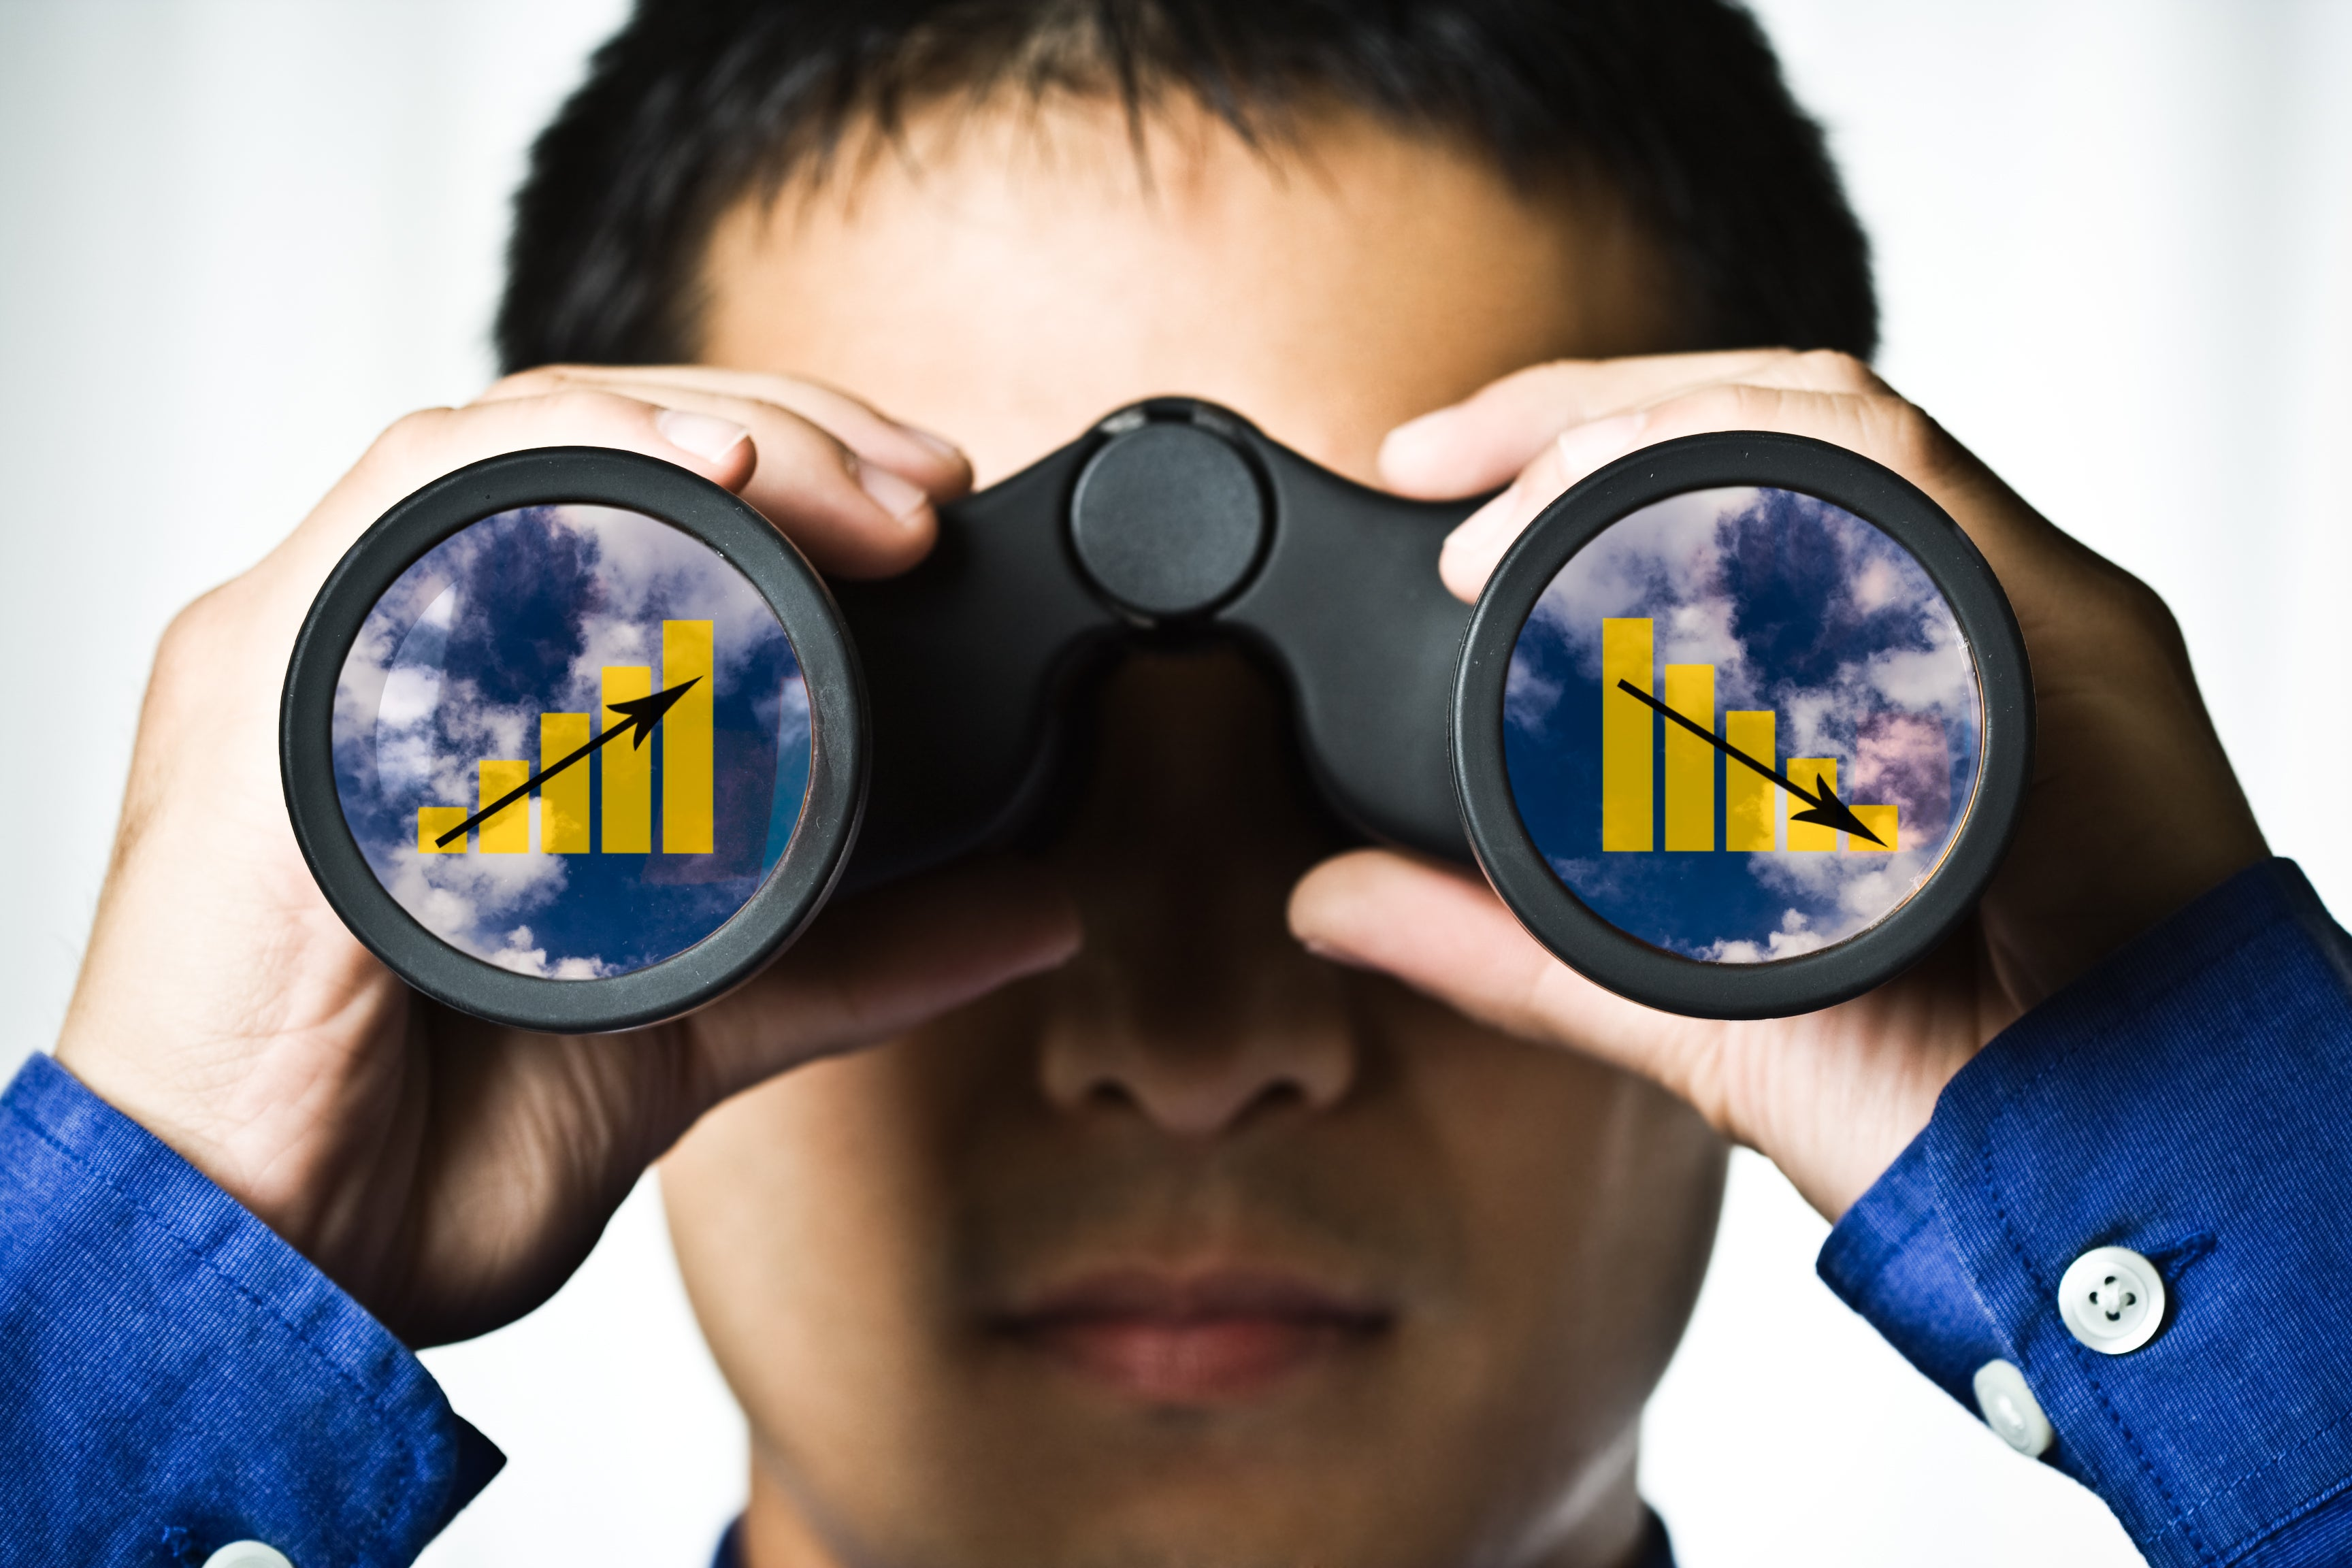 Man looking through binoculars with charts appearing in both lenses